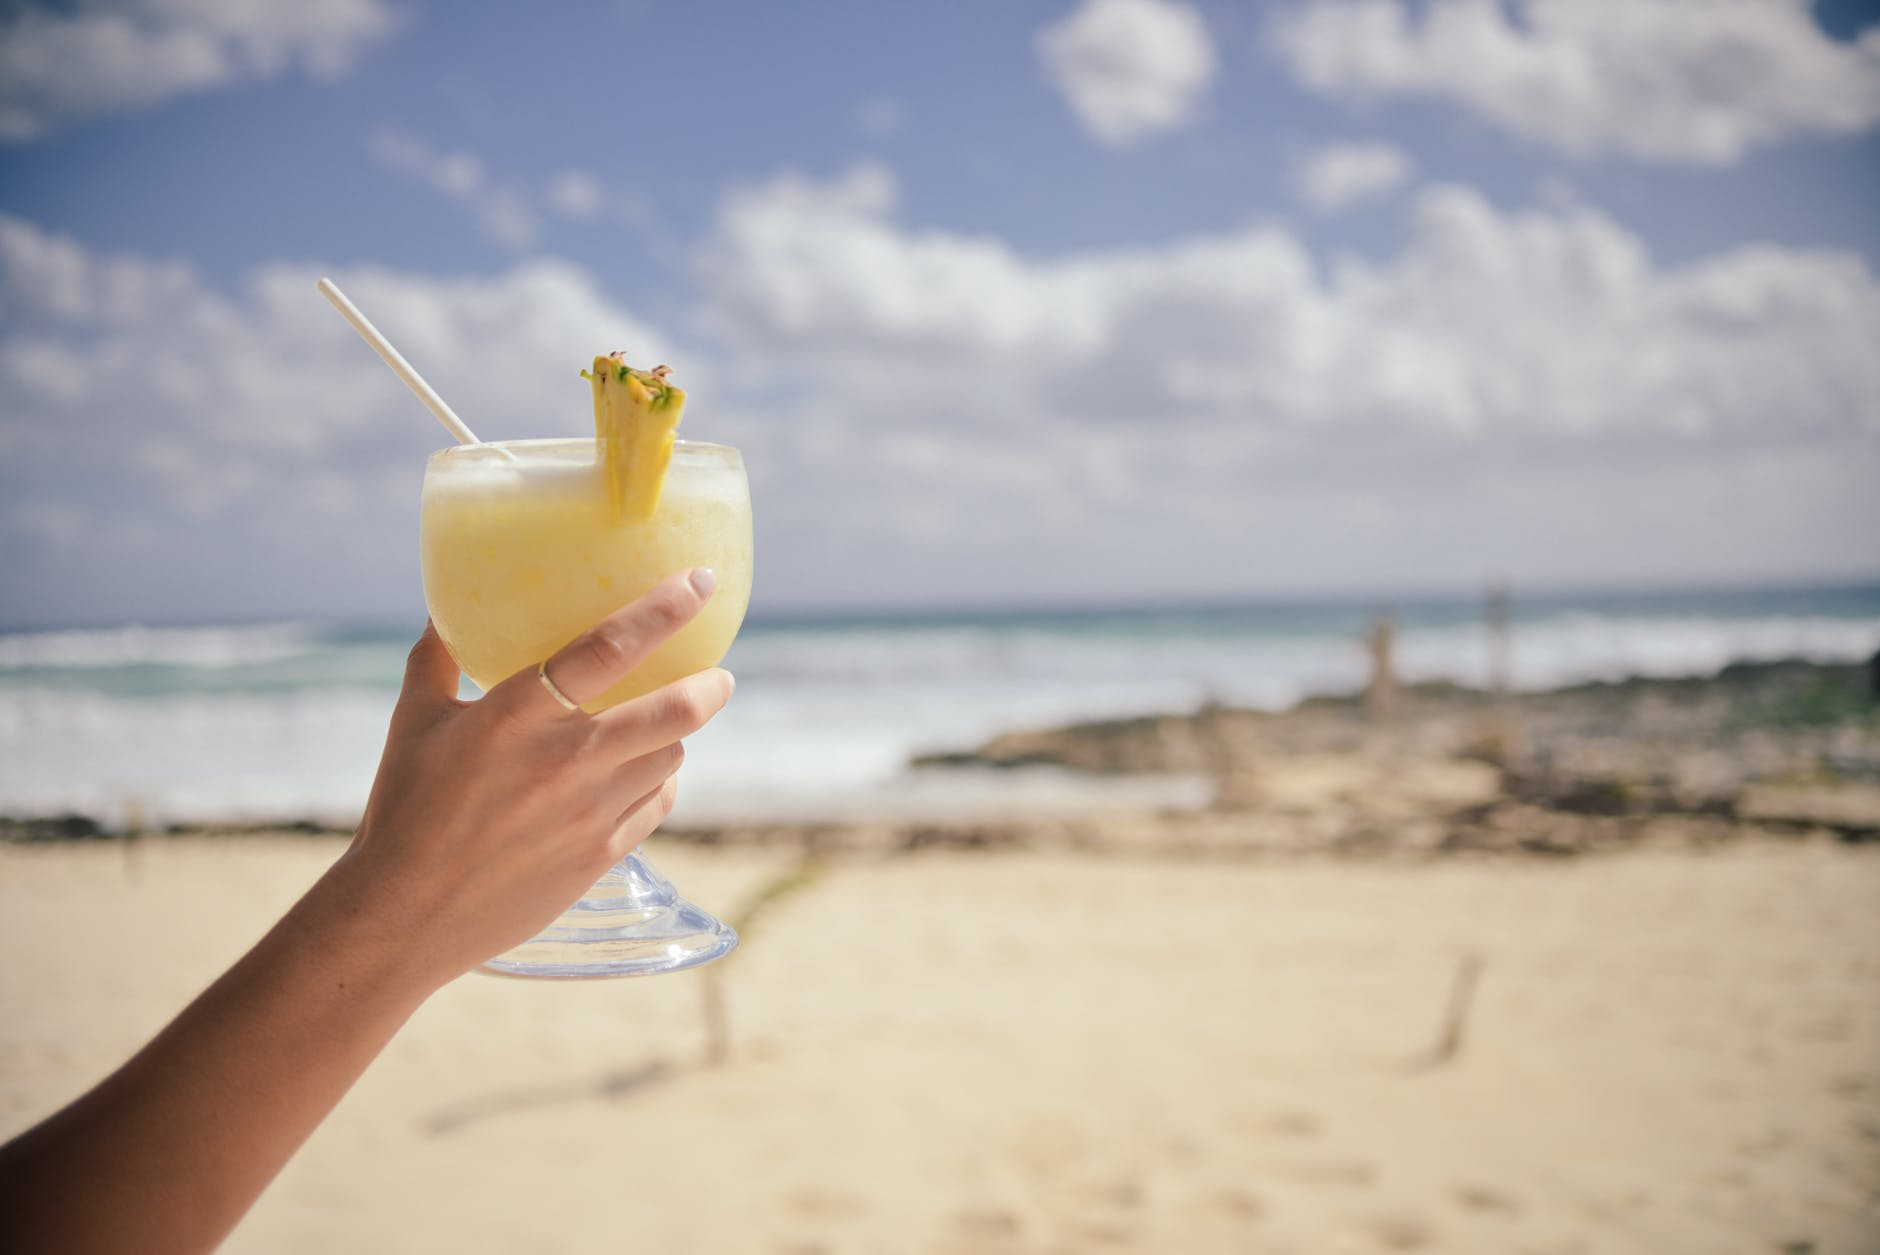 Lady holding a cocktail with a sandy beach in the background